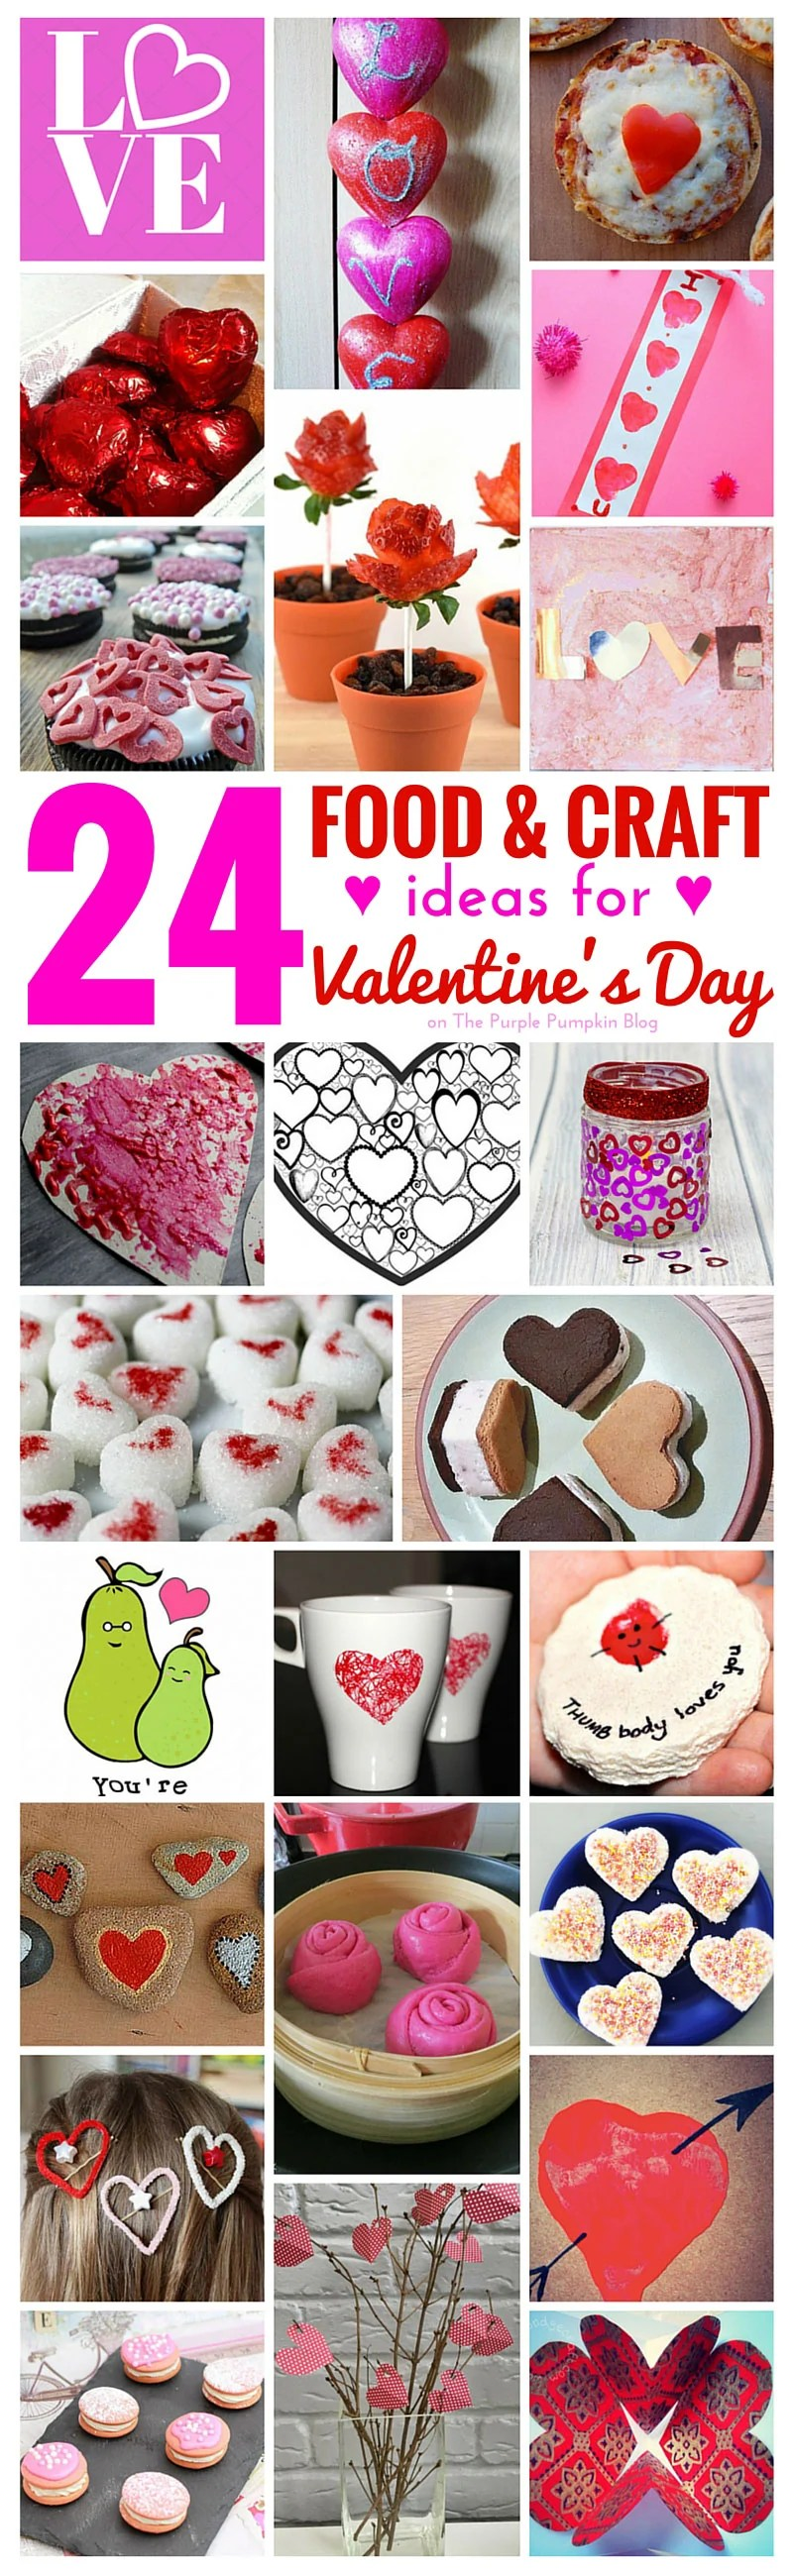 24 Food & Craft Ideas for Valentines Day